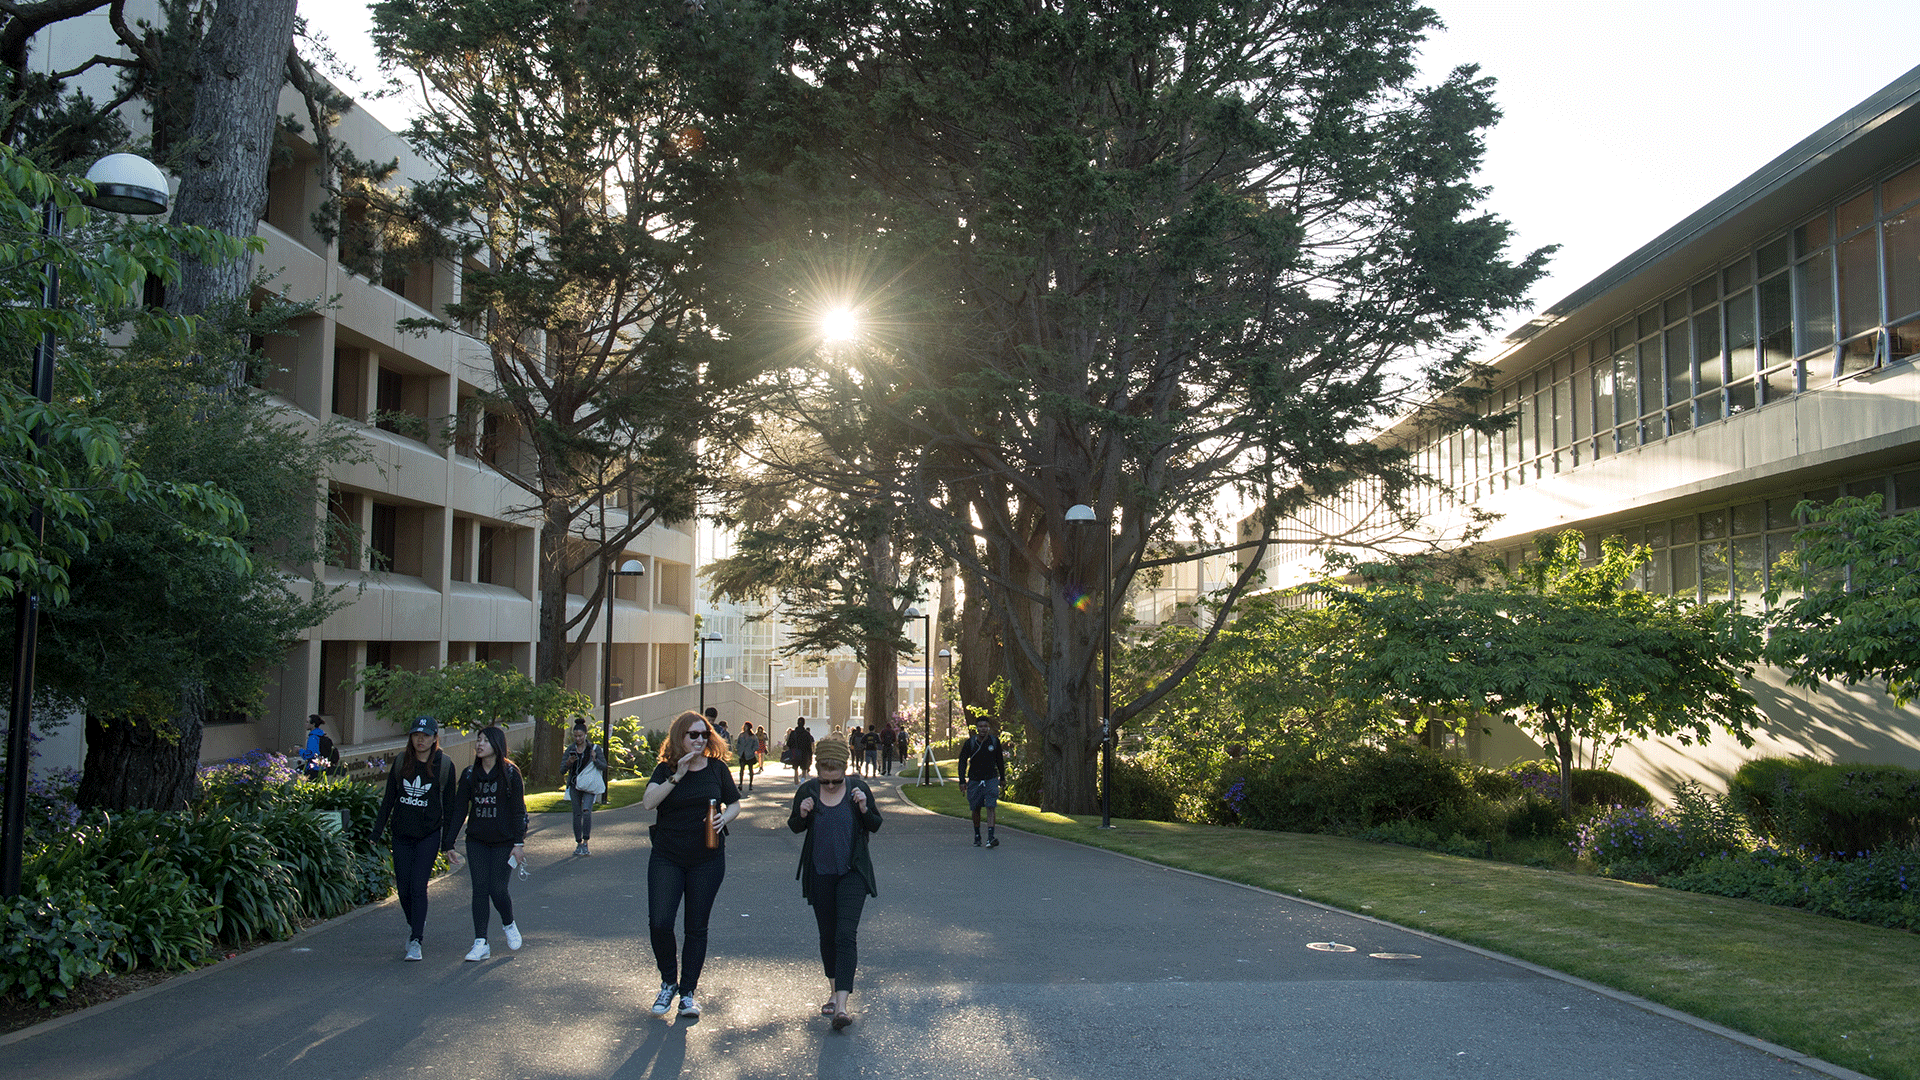 Students walking on campus, with sunshine through the trees behind them